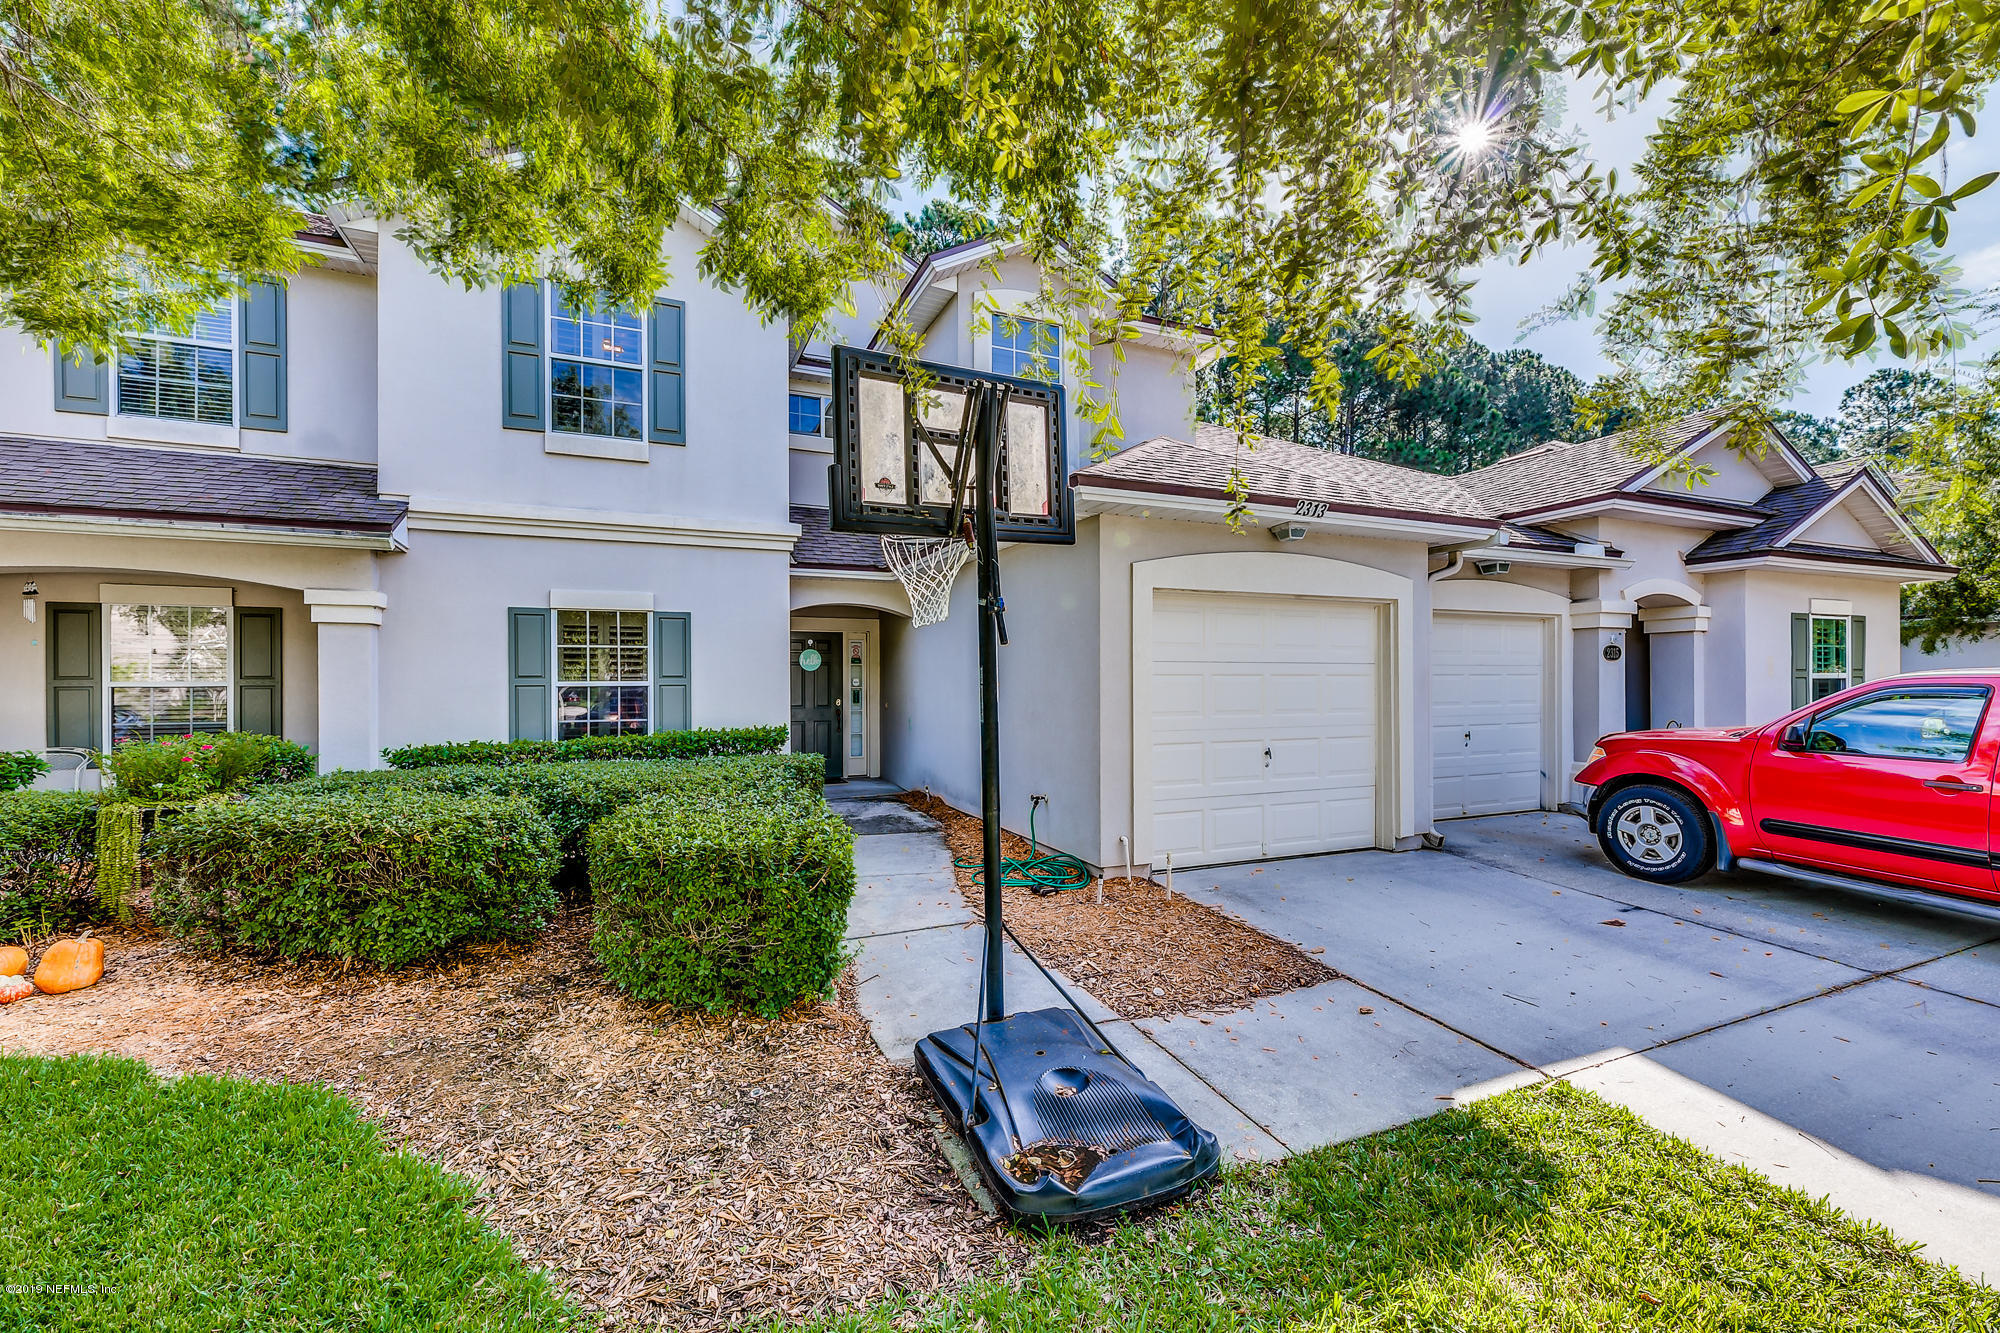 2313 OLD PINE, ORANGE PARK, FLORIDA 32003, 4 Bedrooms Bedrooms, ,2 BathroomsBathrooms,Residential - townhome,For sale,OLD PINE,1021056